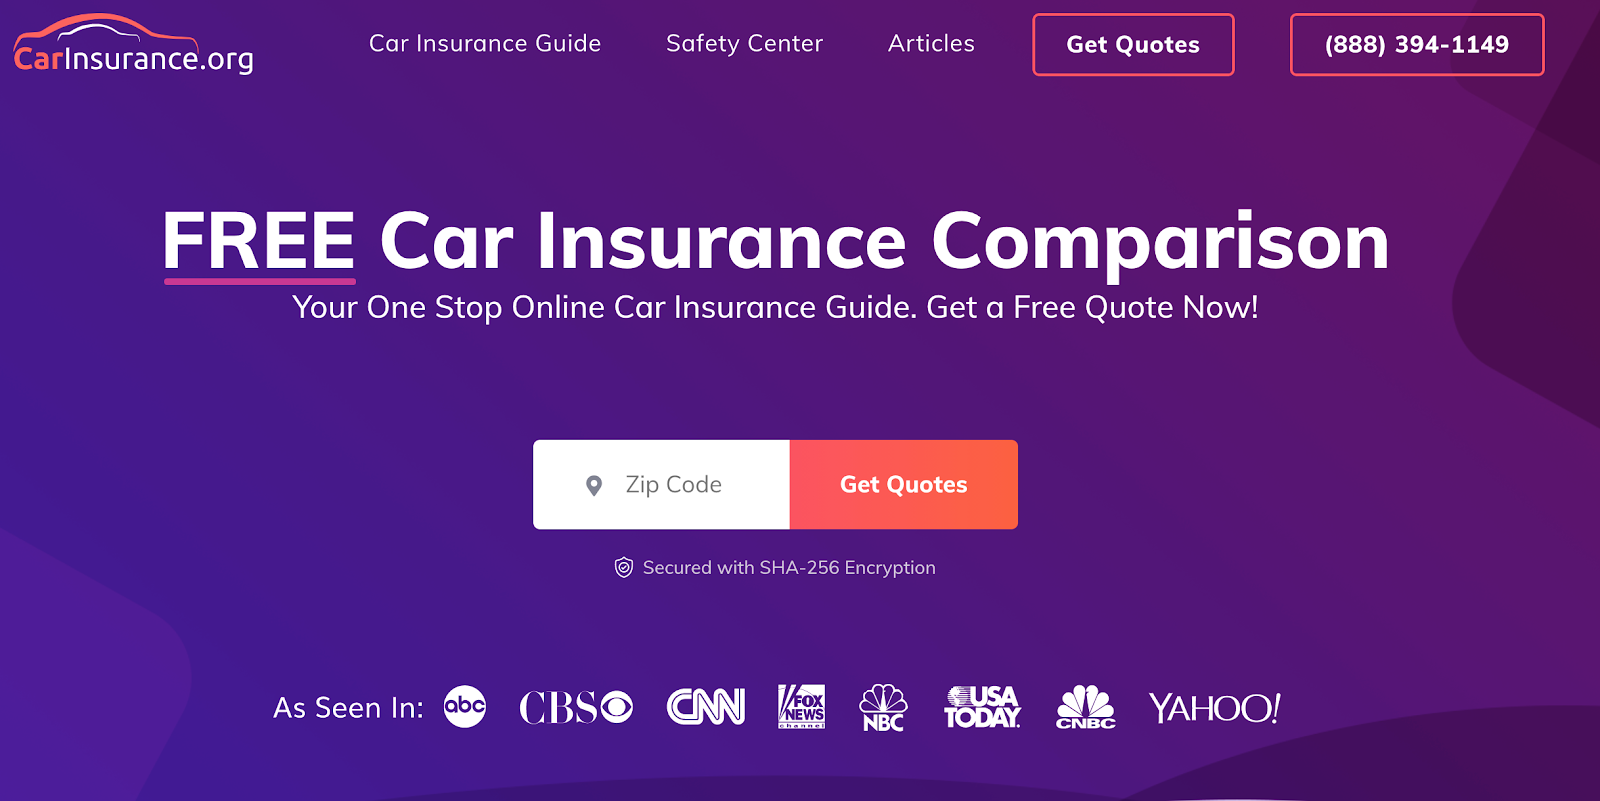 CarInsurance.org service page example